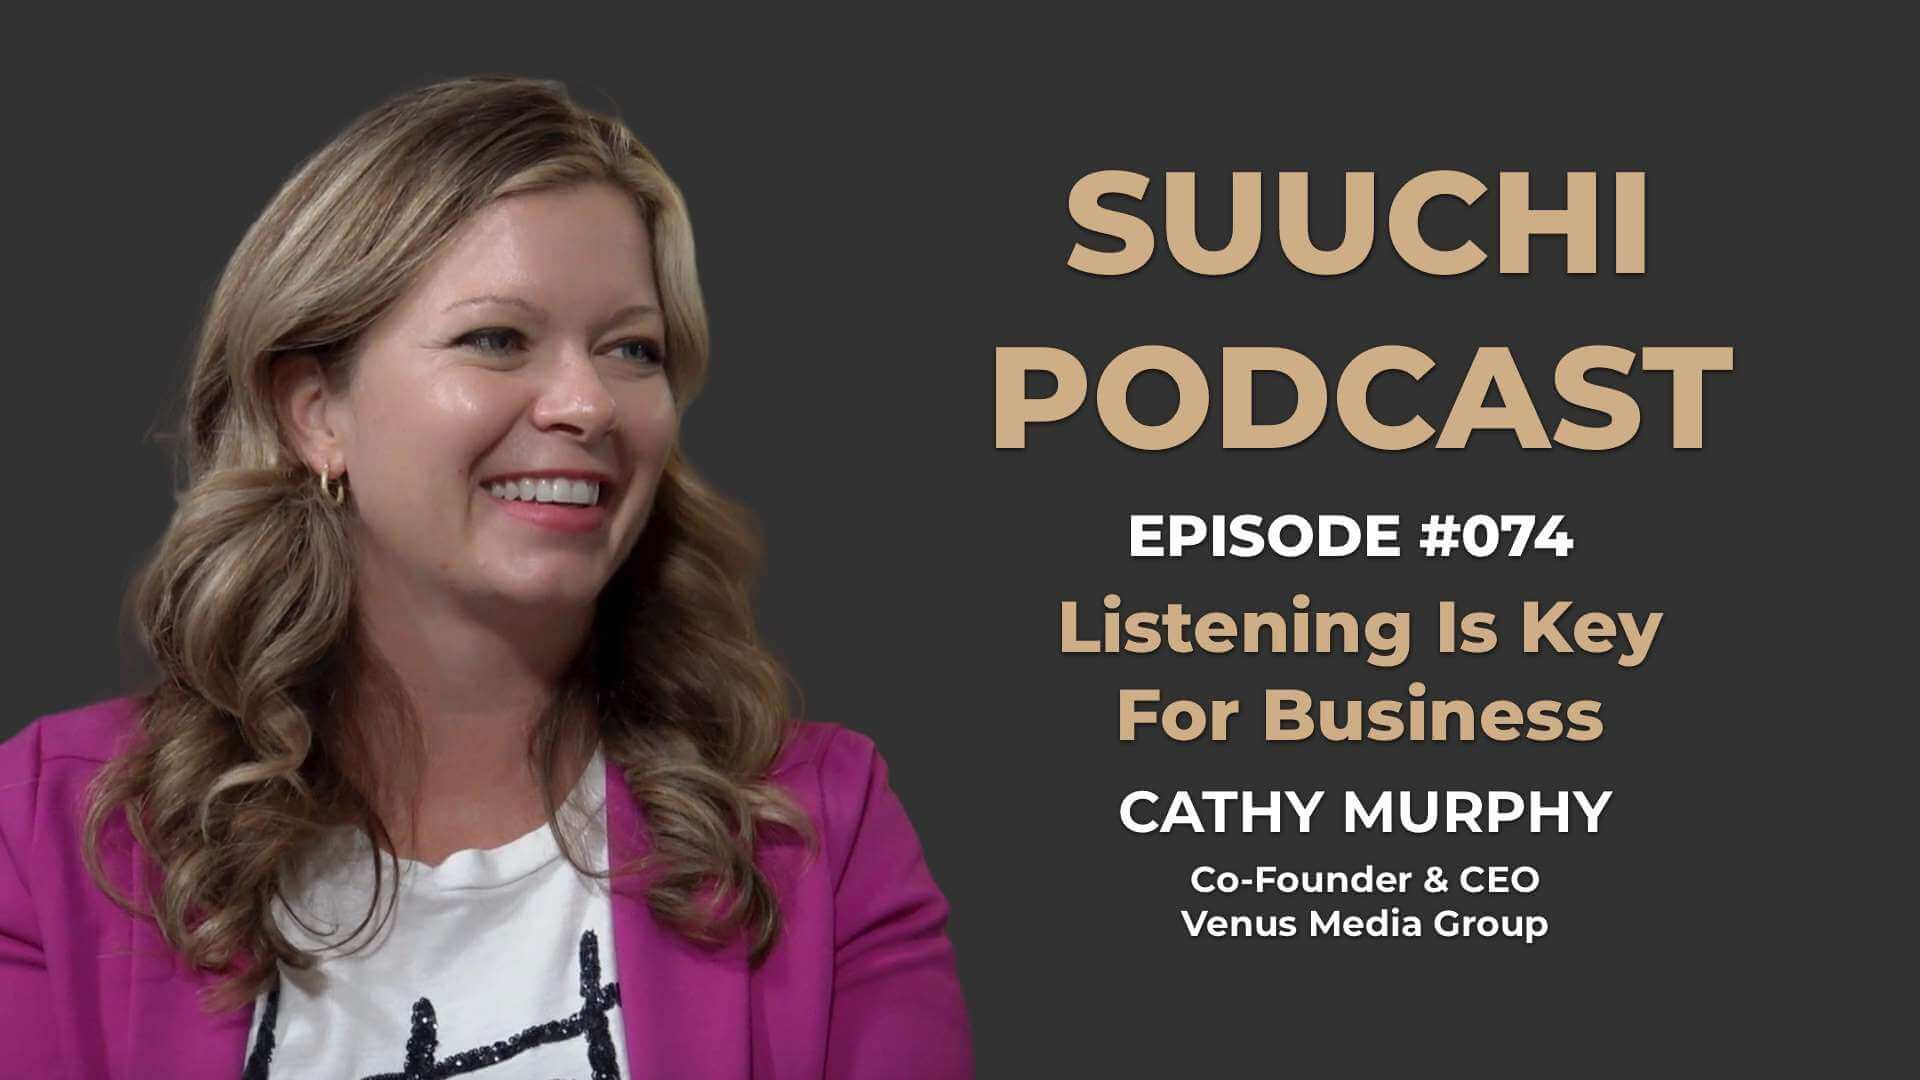 Suuchi Podcast #74 - Cathy Murphy, CEO & Co-Founder of Venus Media Group